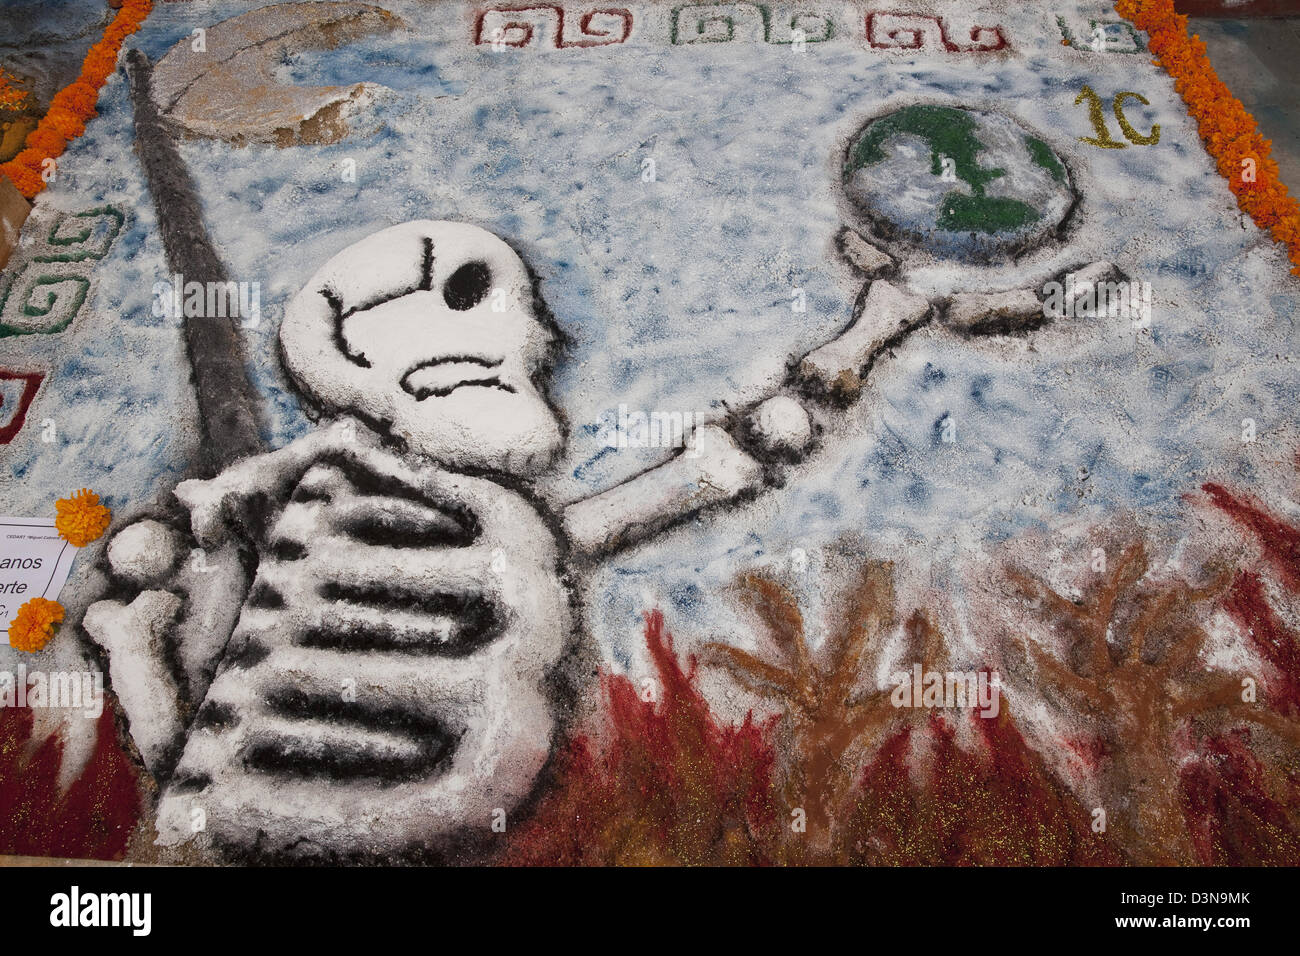 Sand painting of skeleton holding the heating earth created for Day of the Dead festival, Oaxaca, Mexico. - Stock Image